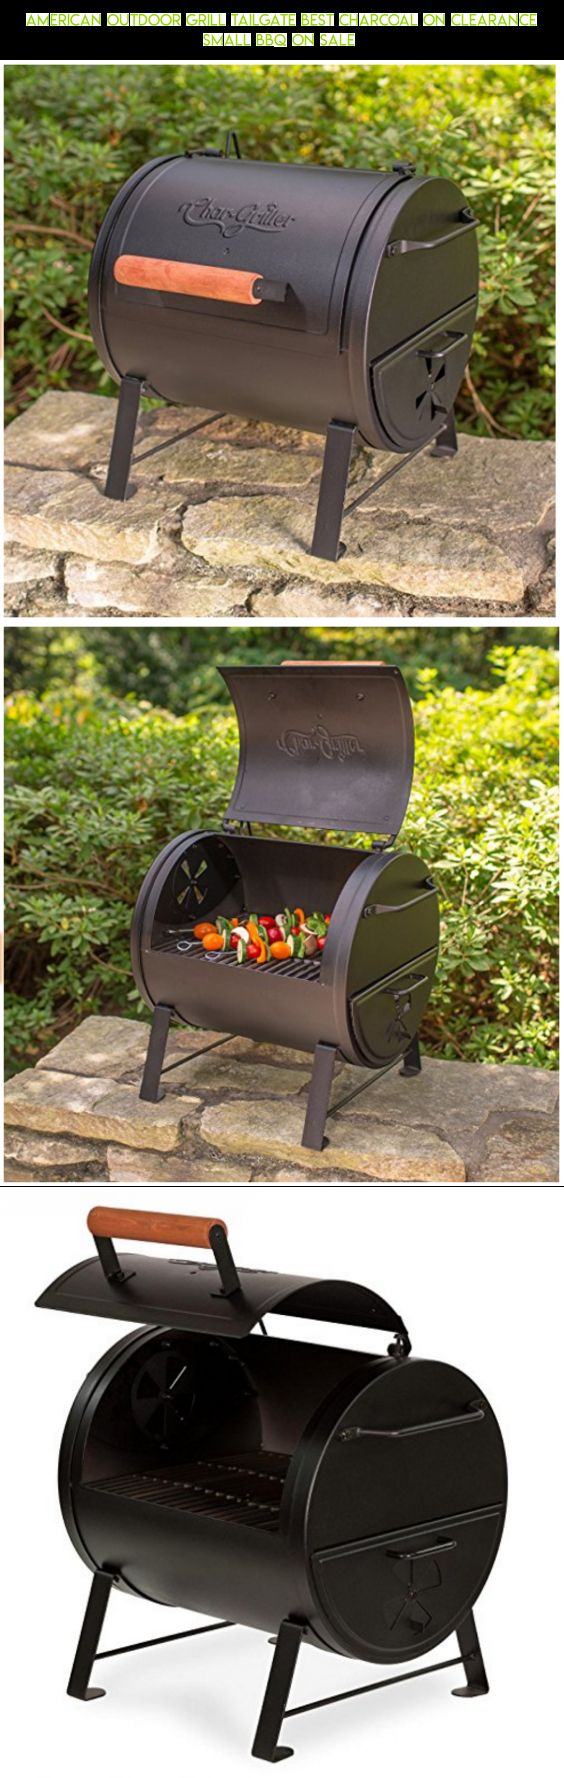 American Outdoor Grill Tailgate Best Charcoal On Clearance Small Bbq On Sale  #products #fpv #grills #parts #technology #drone #plans #charcoal #gadgets #racing #shopping #kit #camera #on #tech #clearance